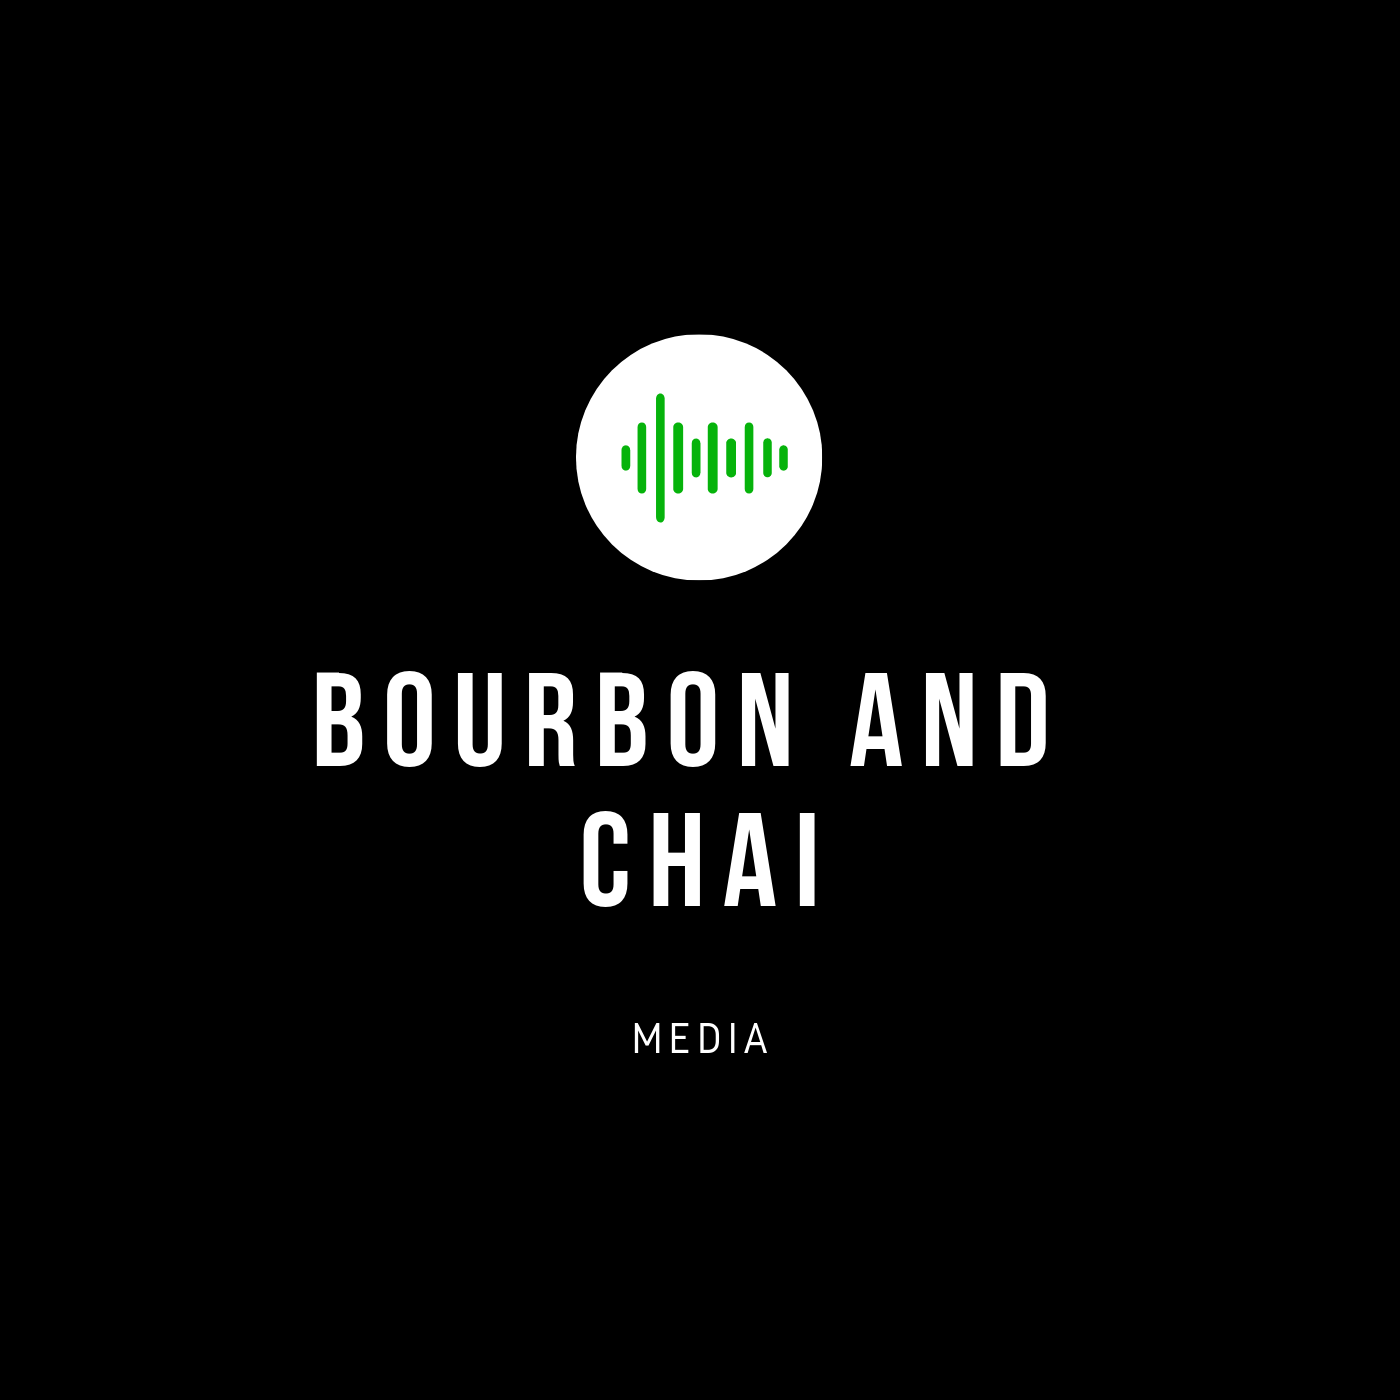 Copy of BourbonandChaiMedia1.png